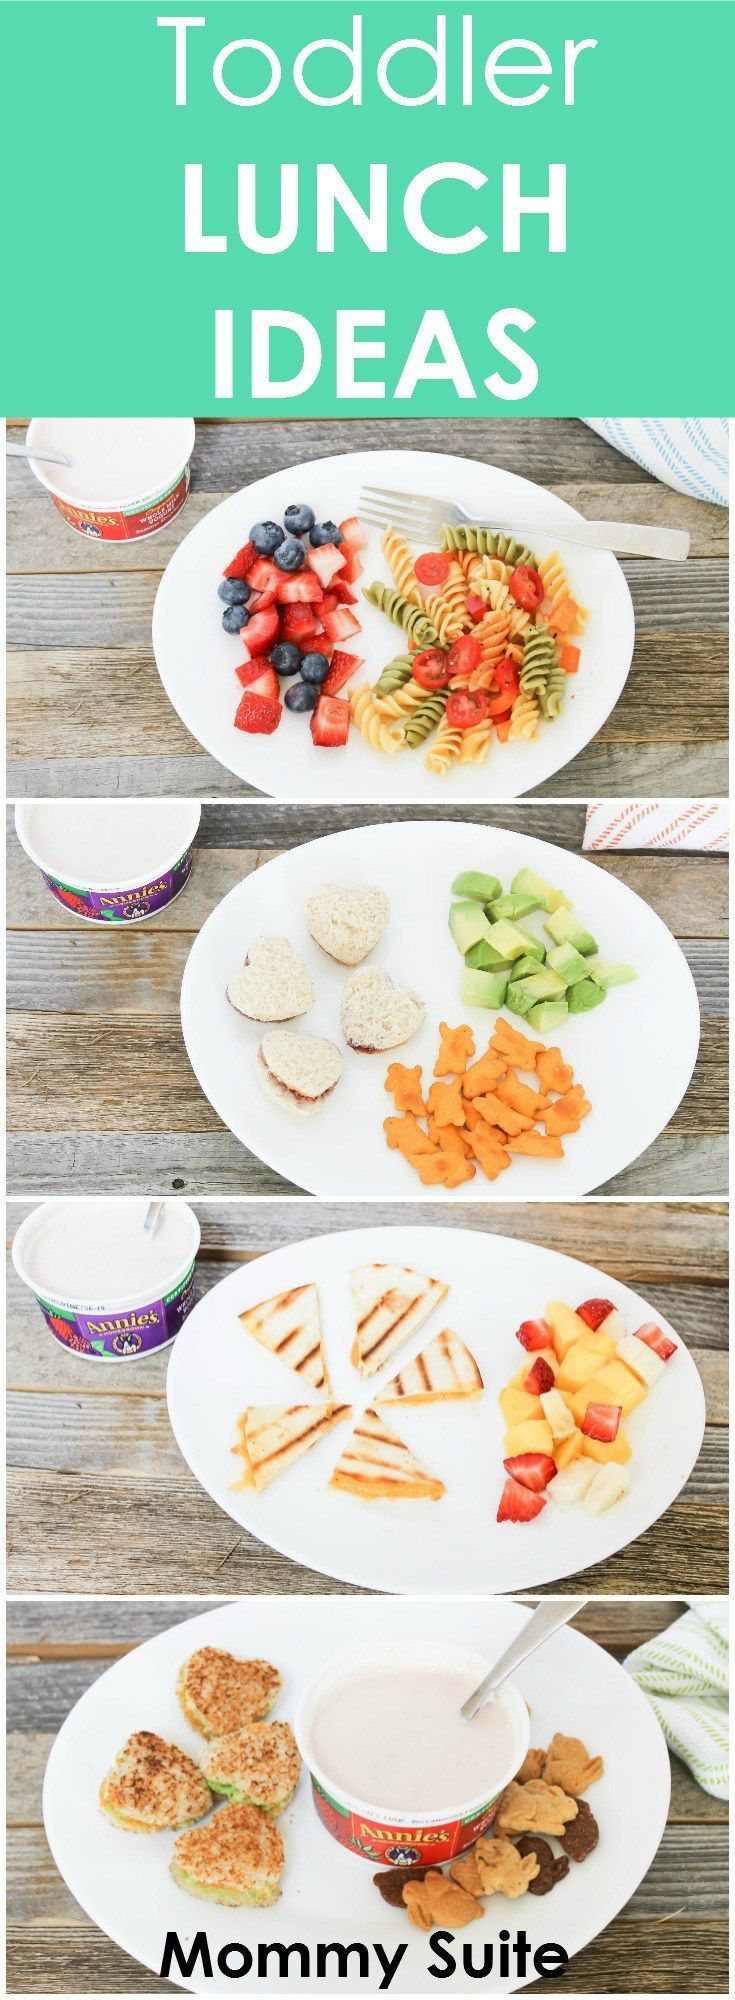 preschool lunch ideas for picky eaters 95 best toddler meals ideas for picky eaters images on 440